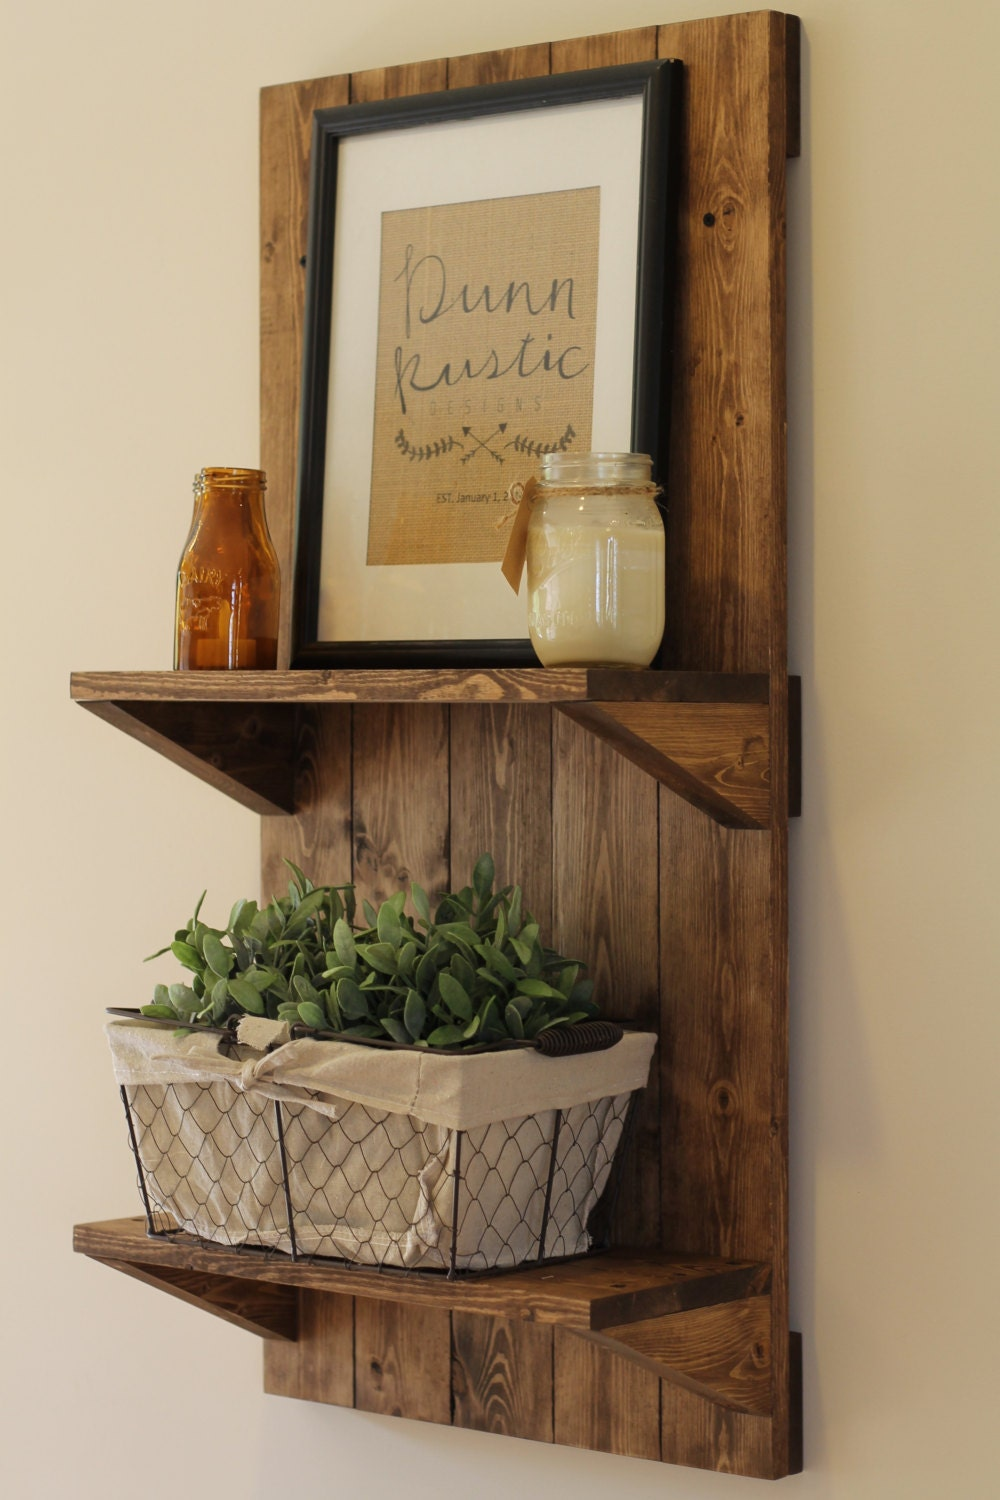 Vertical rustic wooden shelf rustic shelf rustic for Moose decorations home